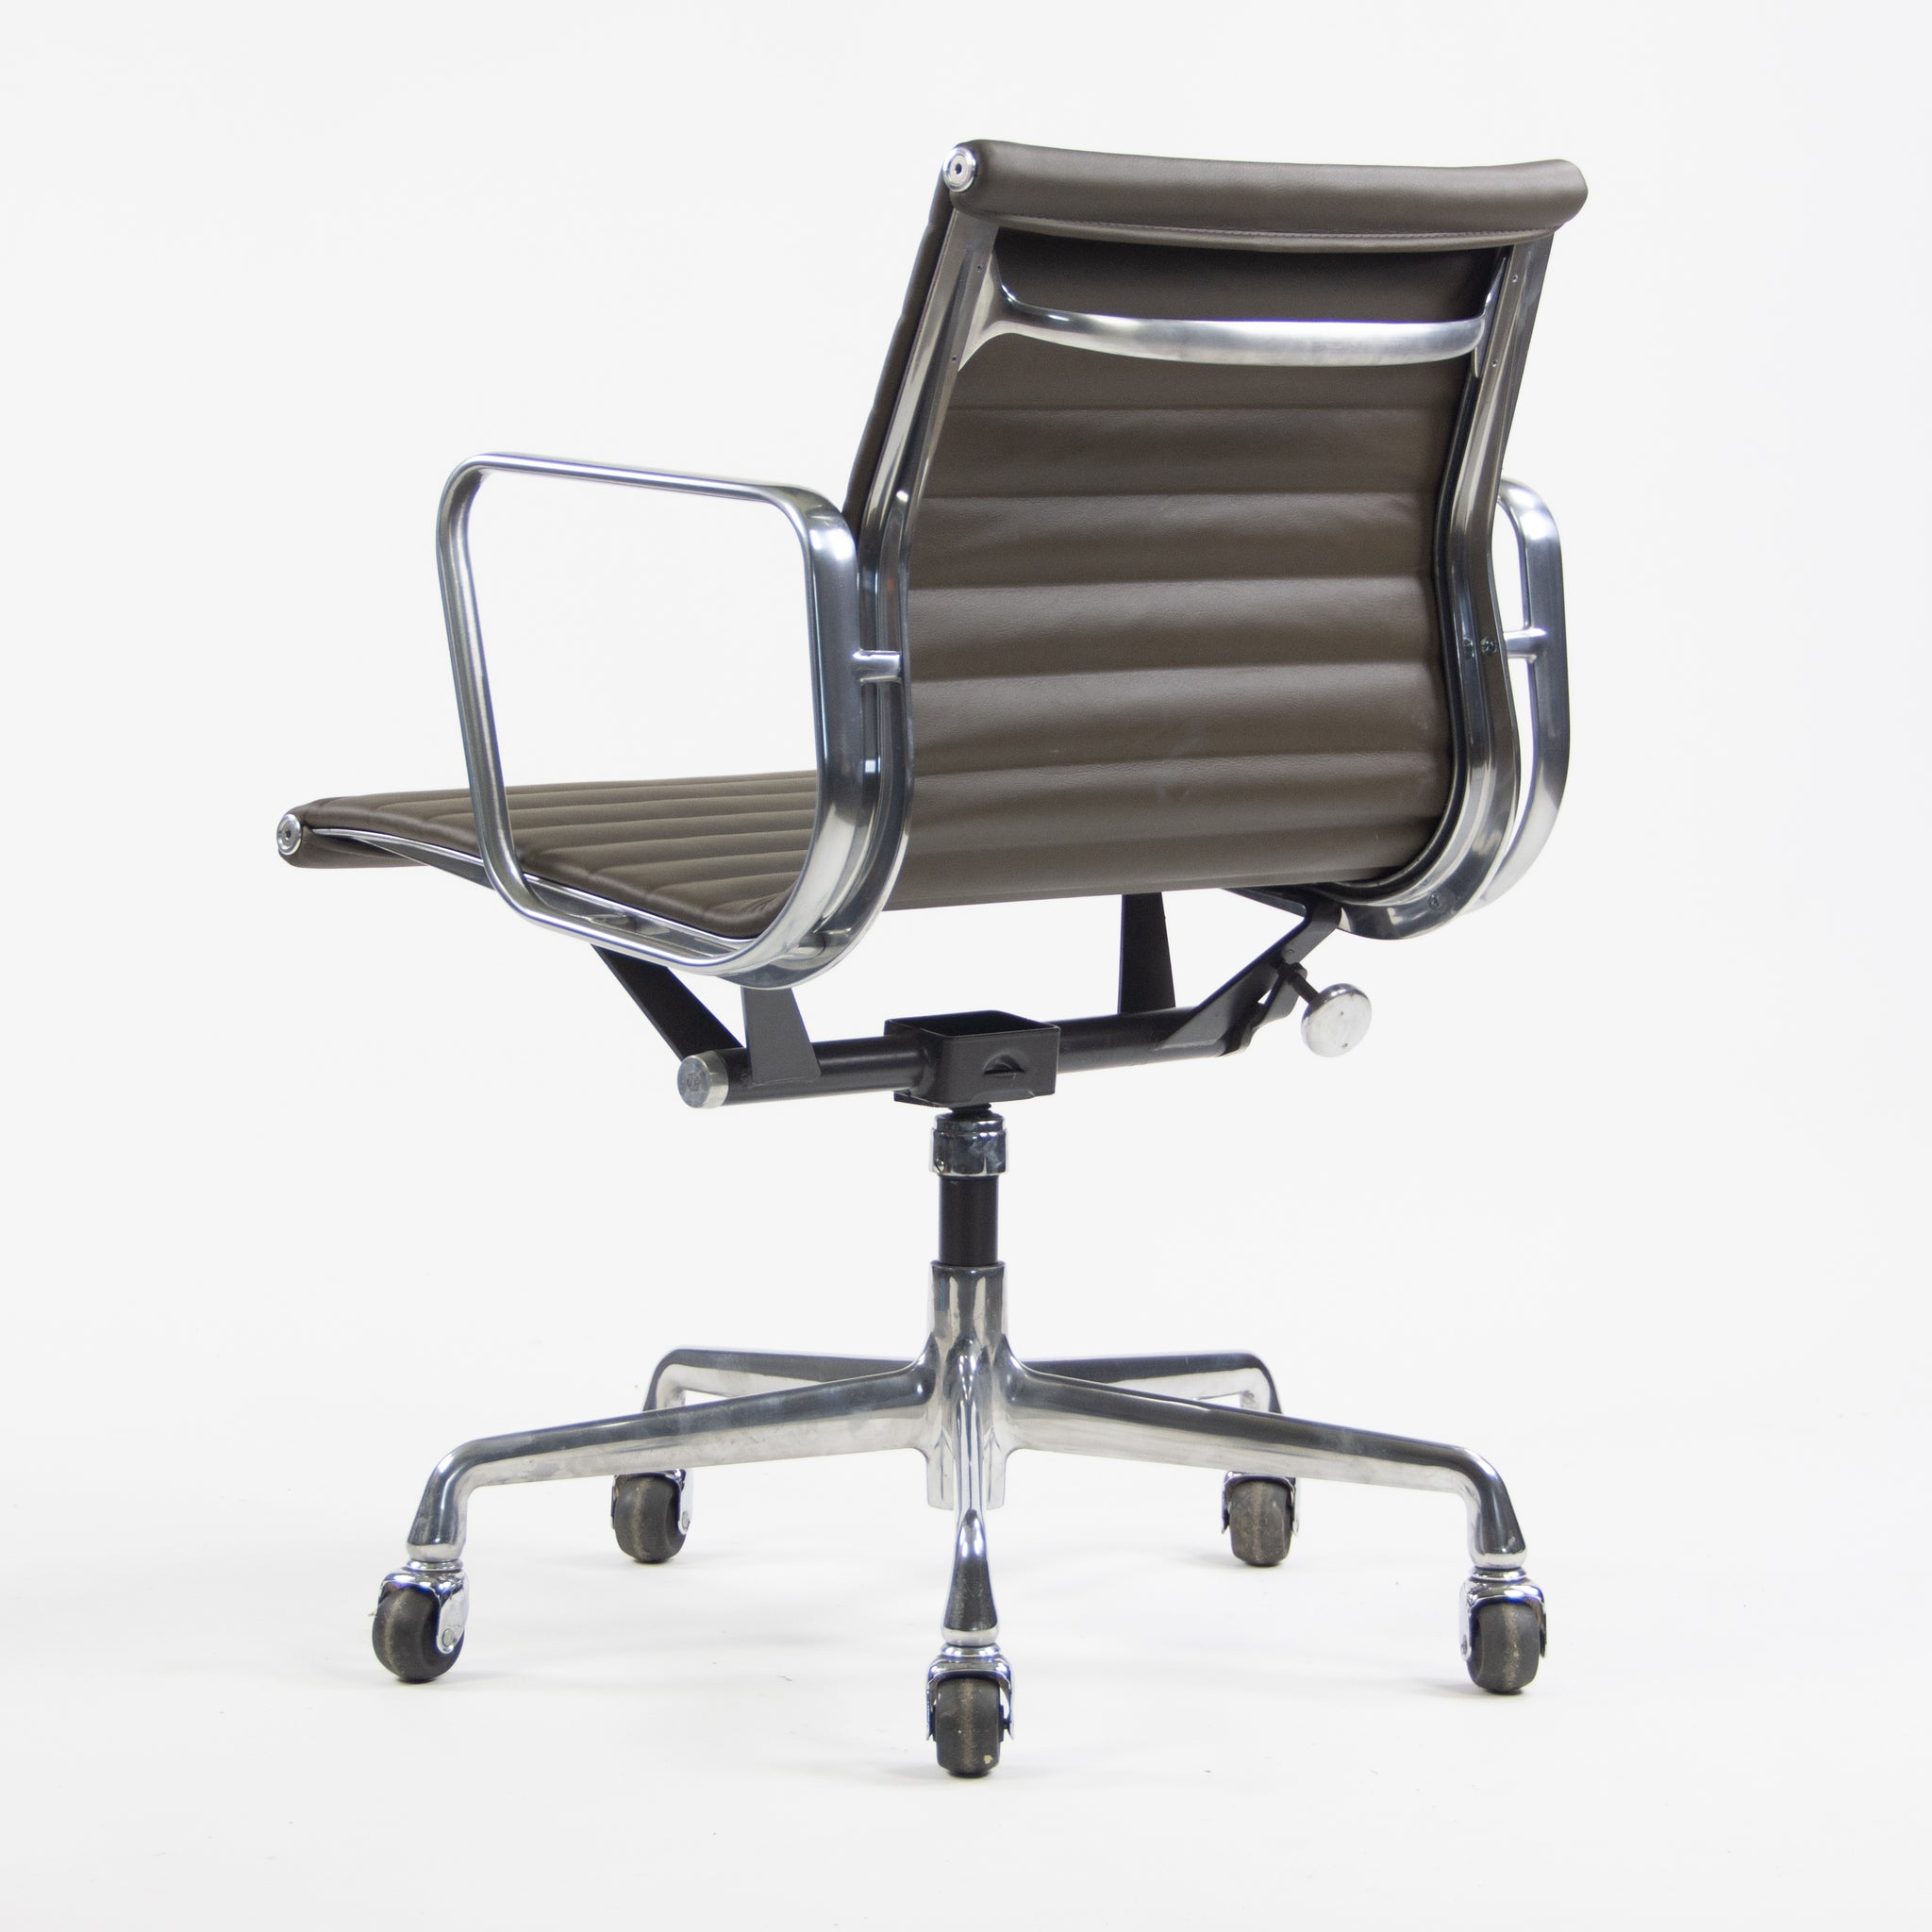 SOLD Herman Miller Eames New Old Stock Low Aluminum Group Management Desk Chair Brown